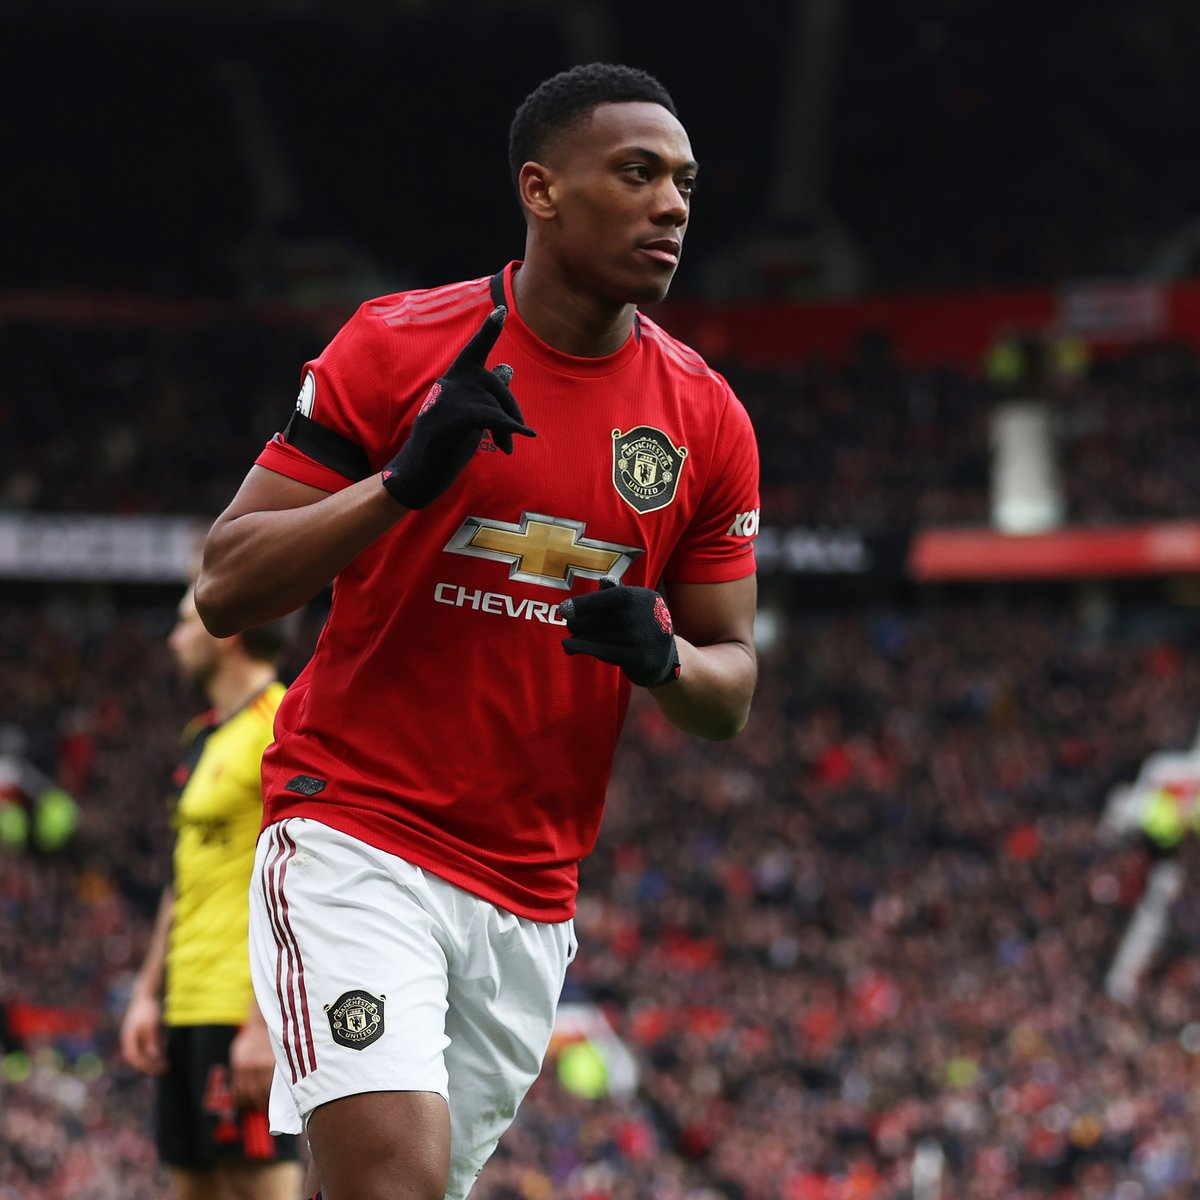 🇫🇷 Anthony Martial's goal against Watford yesterday was absolutely filthy. If this man can stay consistent, he'd easily be amongst the best forwards in Europe.